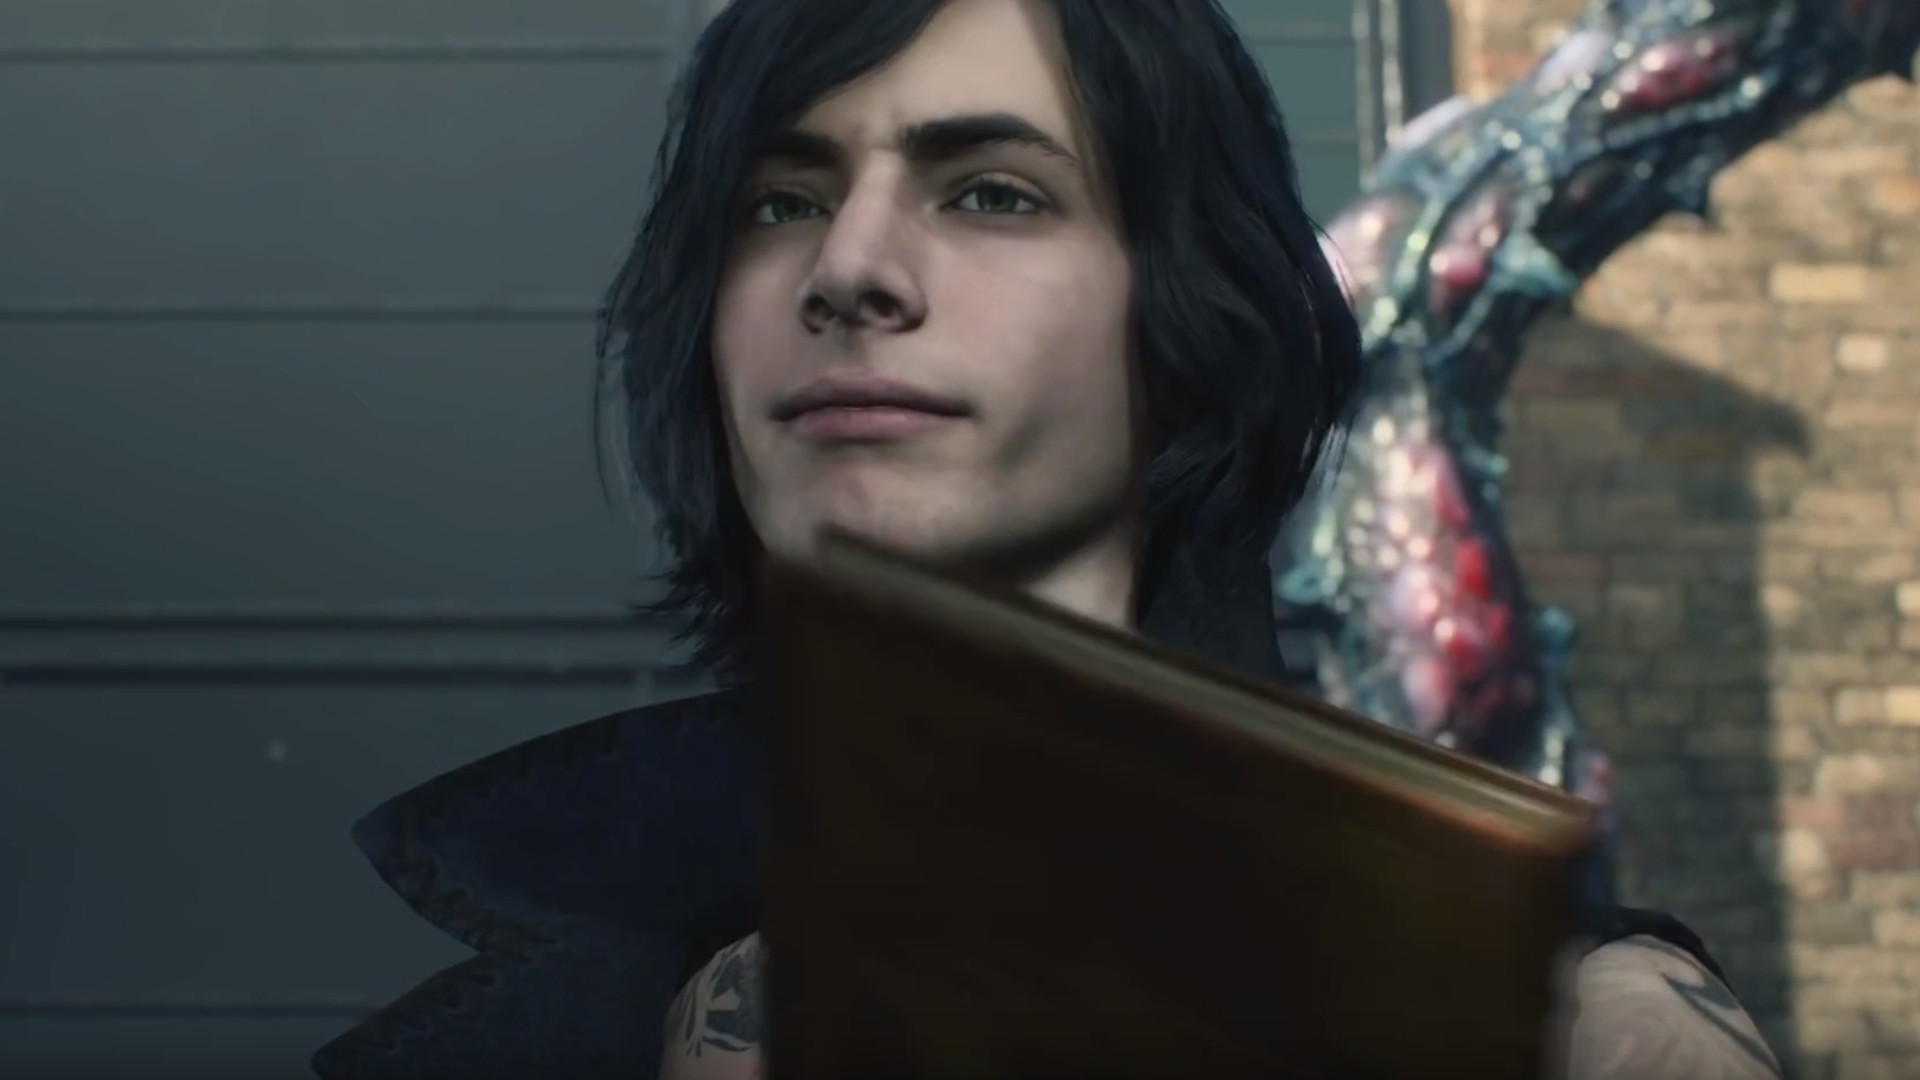 V em Devil May Cry 5